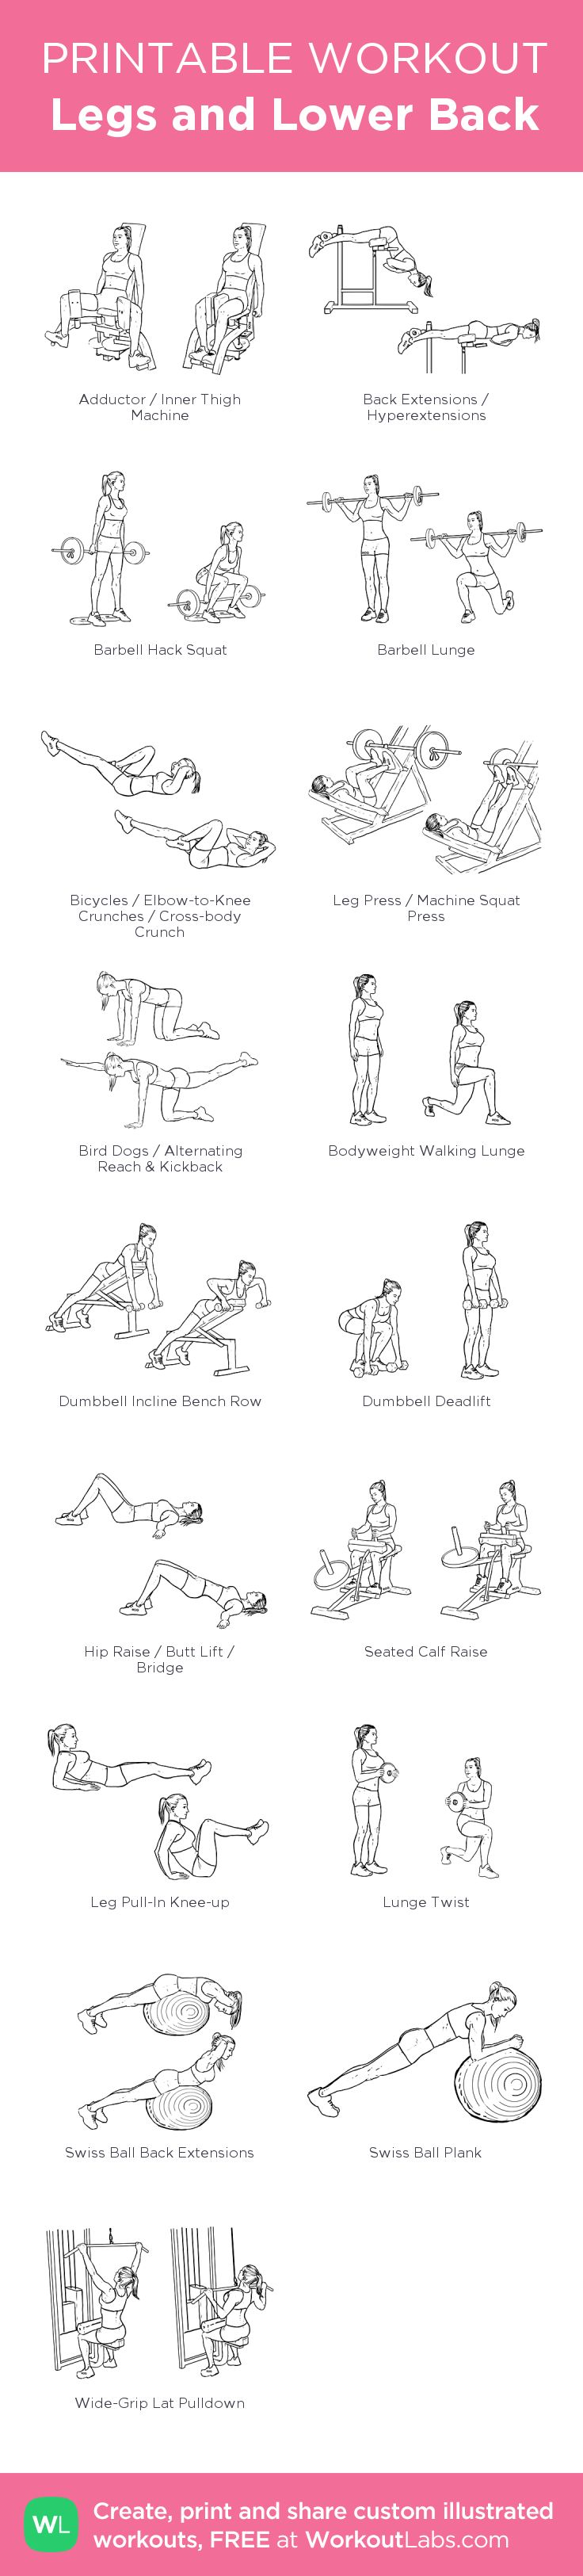 Legs and Lower Back:my visual workout created at WorkoutLabs.com • Click through to customize and download as a FREE PDF! #customworkout